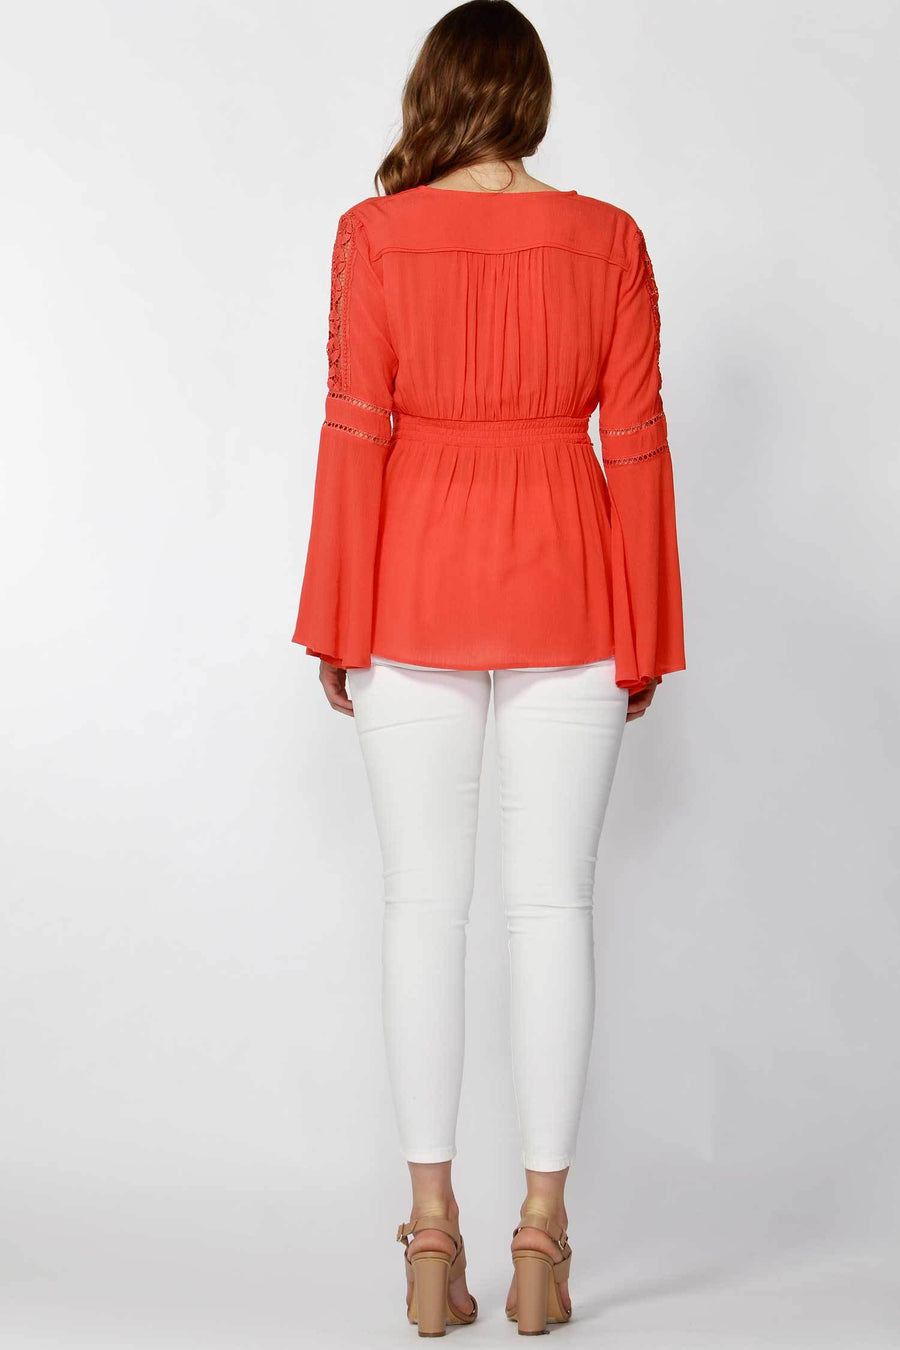 Dominique Lace Trim Blouse in Poppy